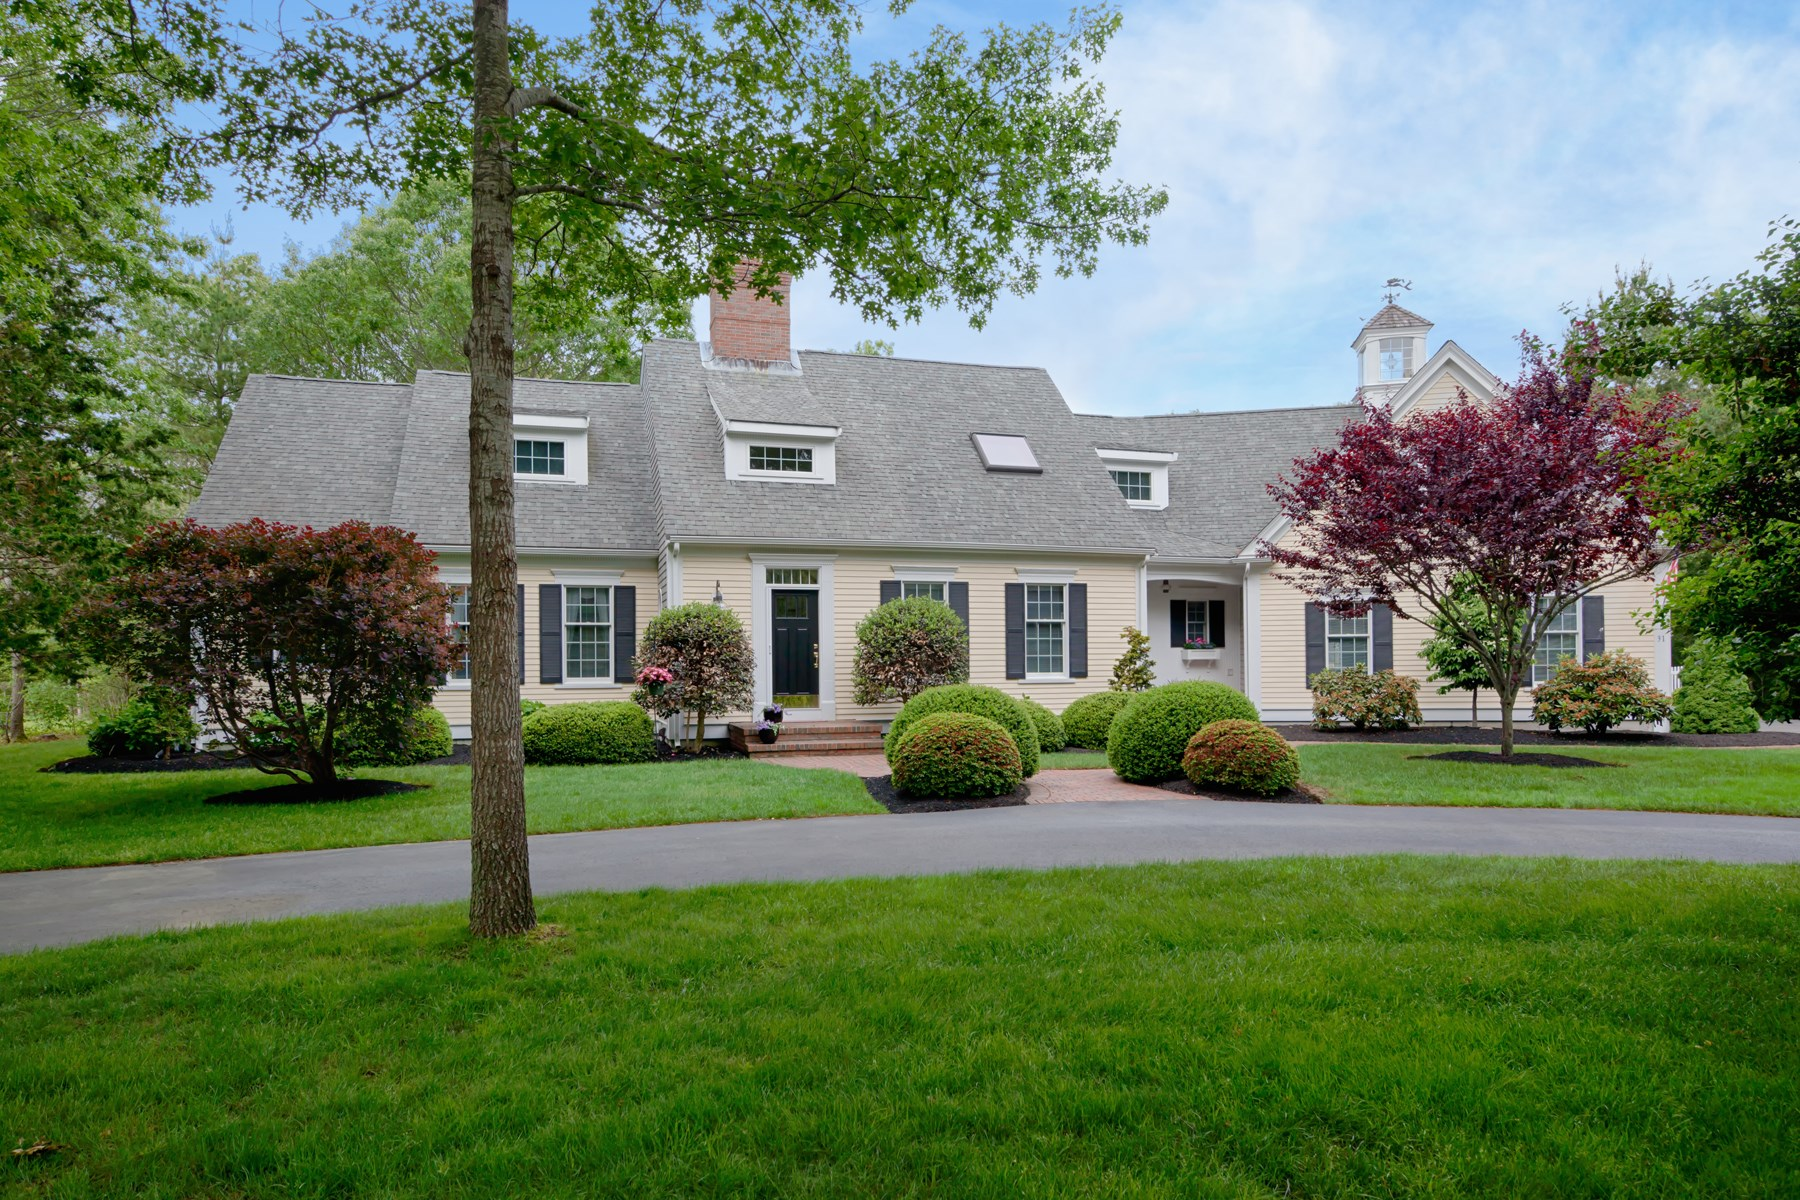 Single Family Home for Sale at Perfection Plus 31 Meadow Farm Road Centerville, Massachusetts, 02632 United States